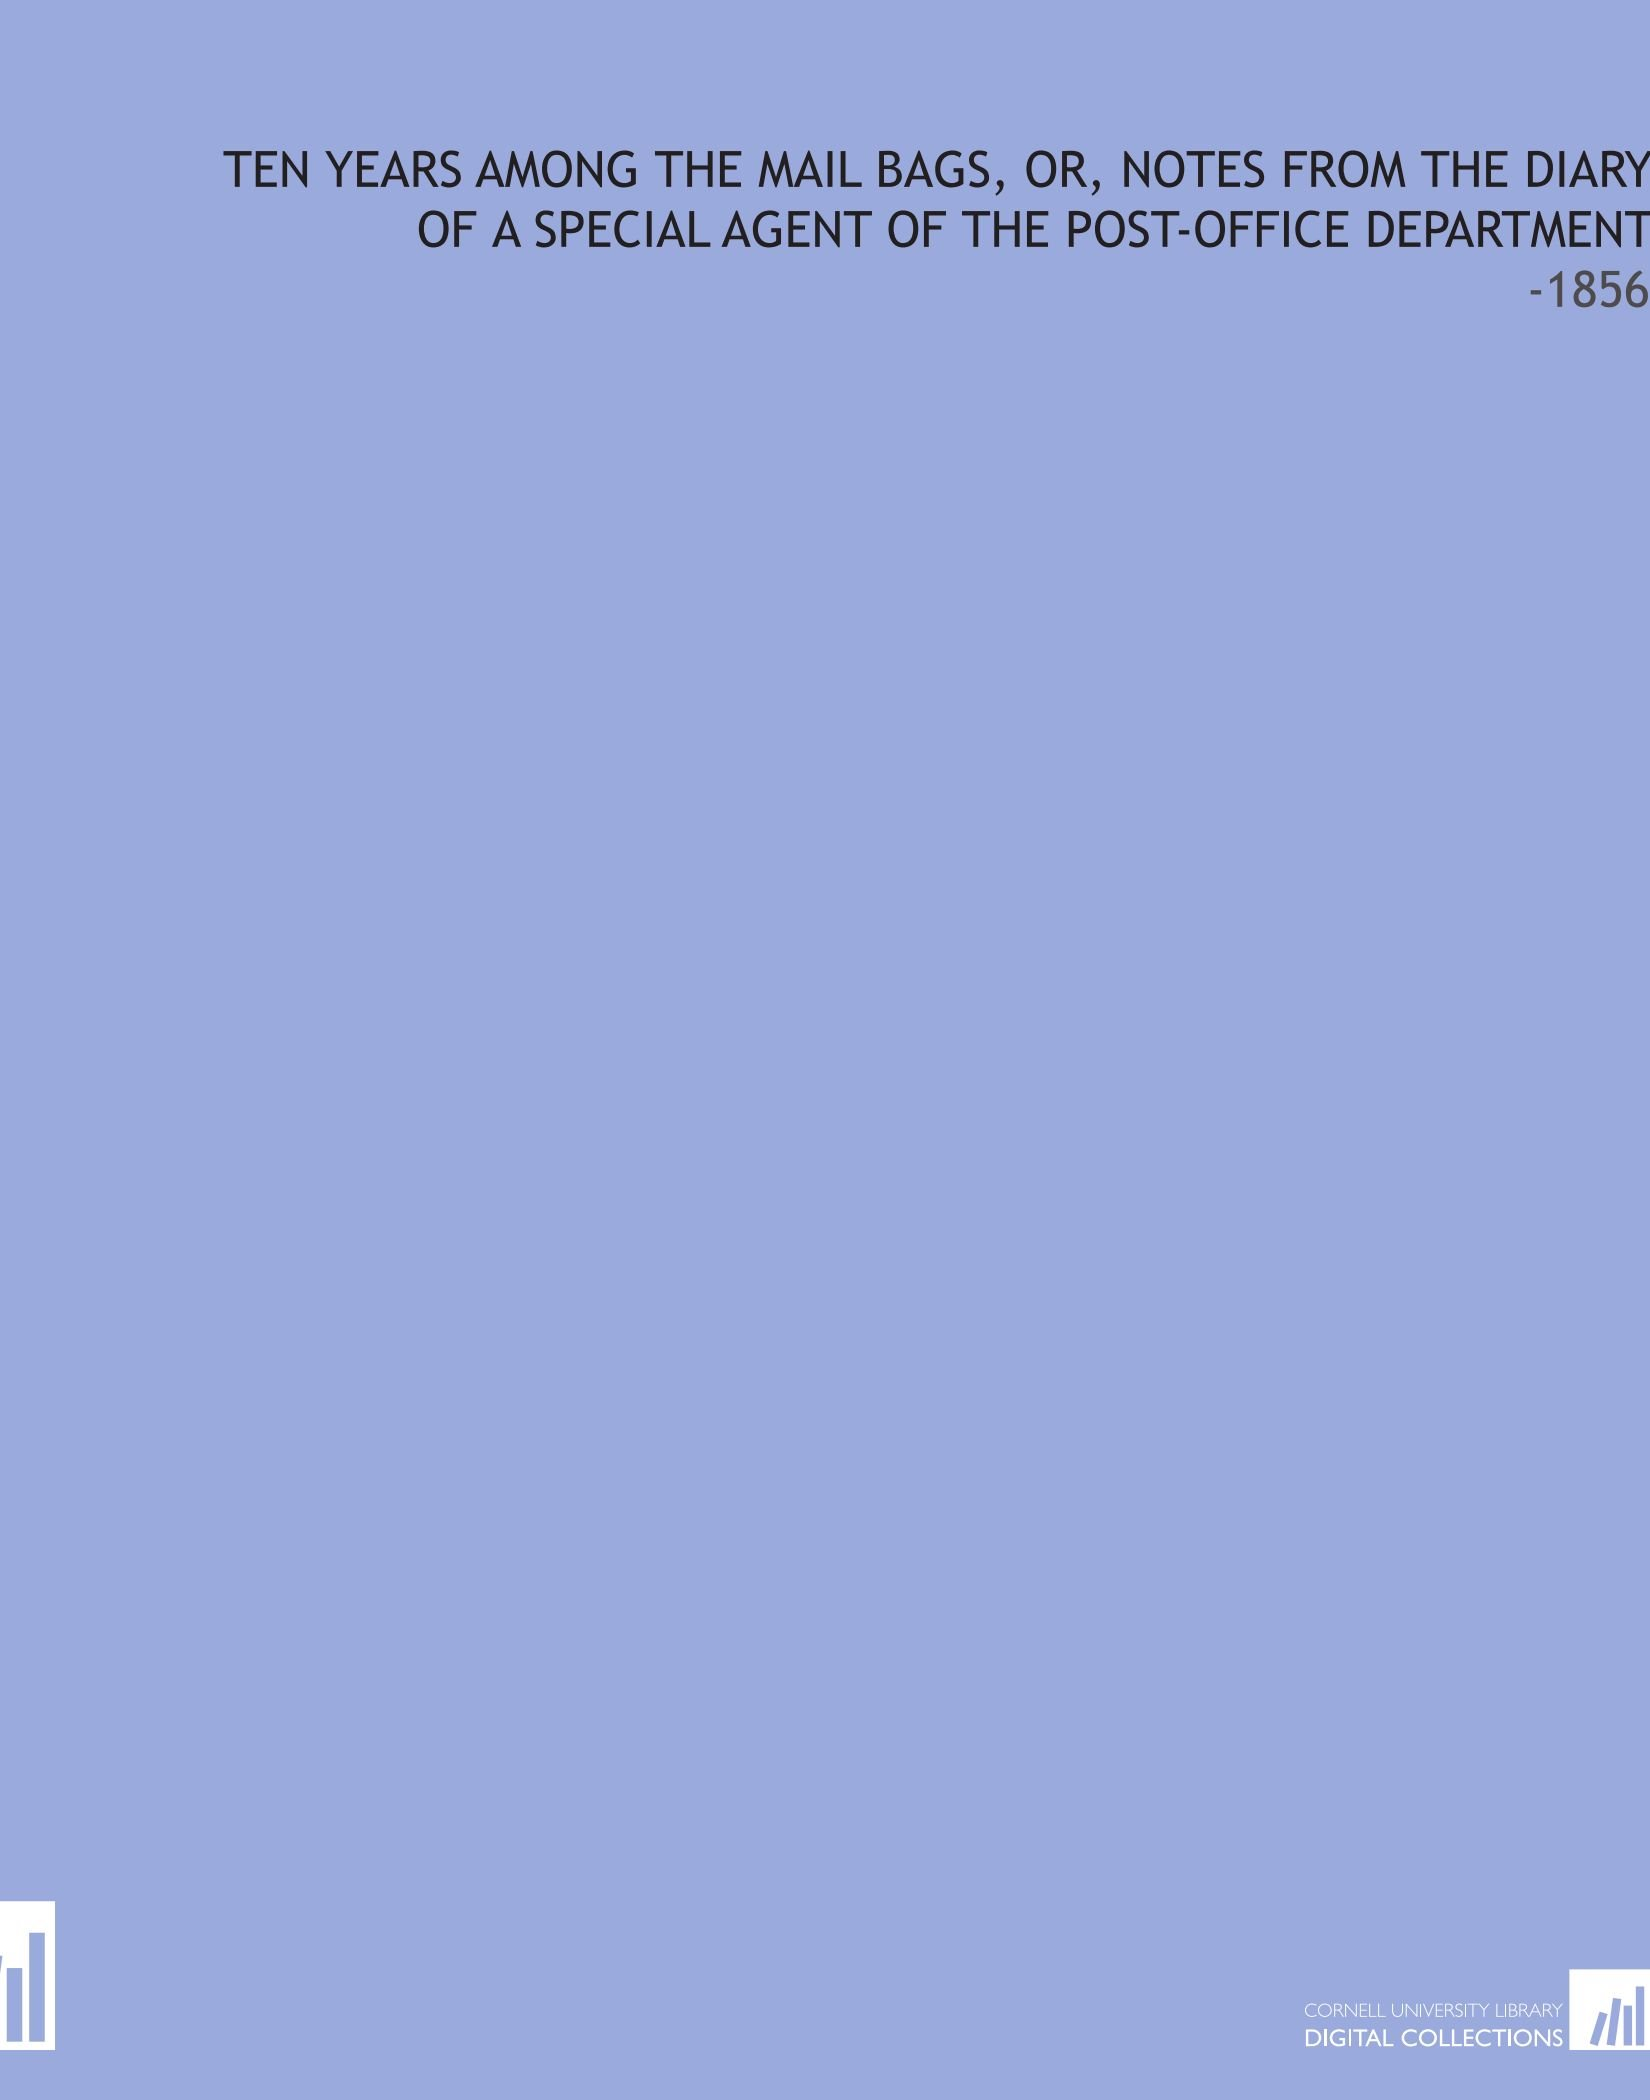 Download Ten Years Among the Mail Bags, Or, Notes From the Diary of a Special Agent of the Post-Office Department: -1856 pdf epub